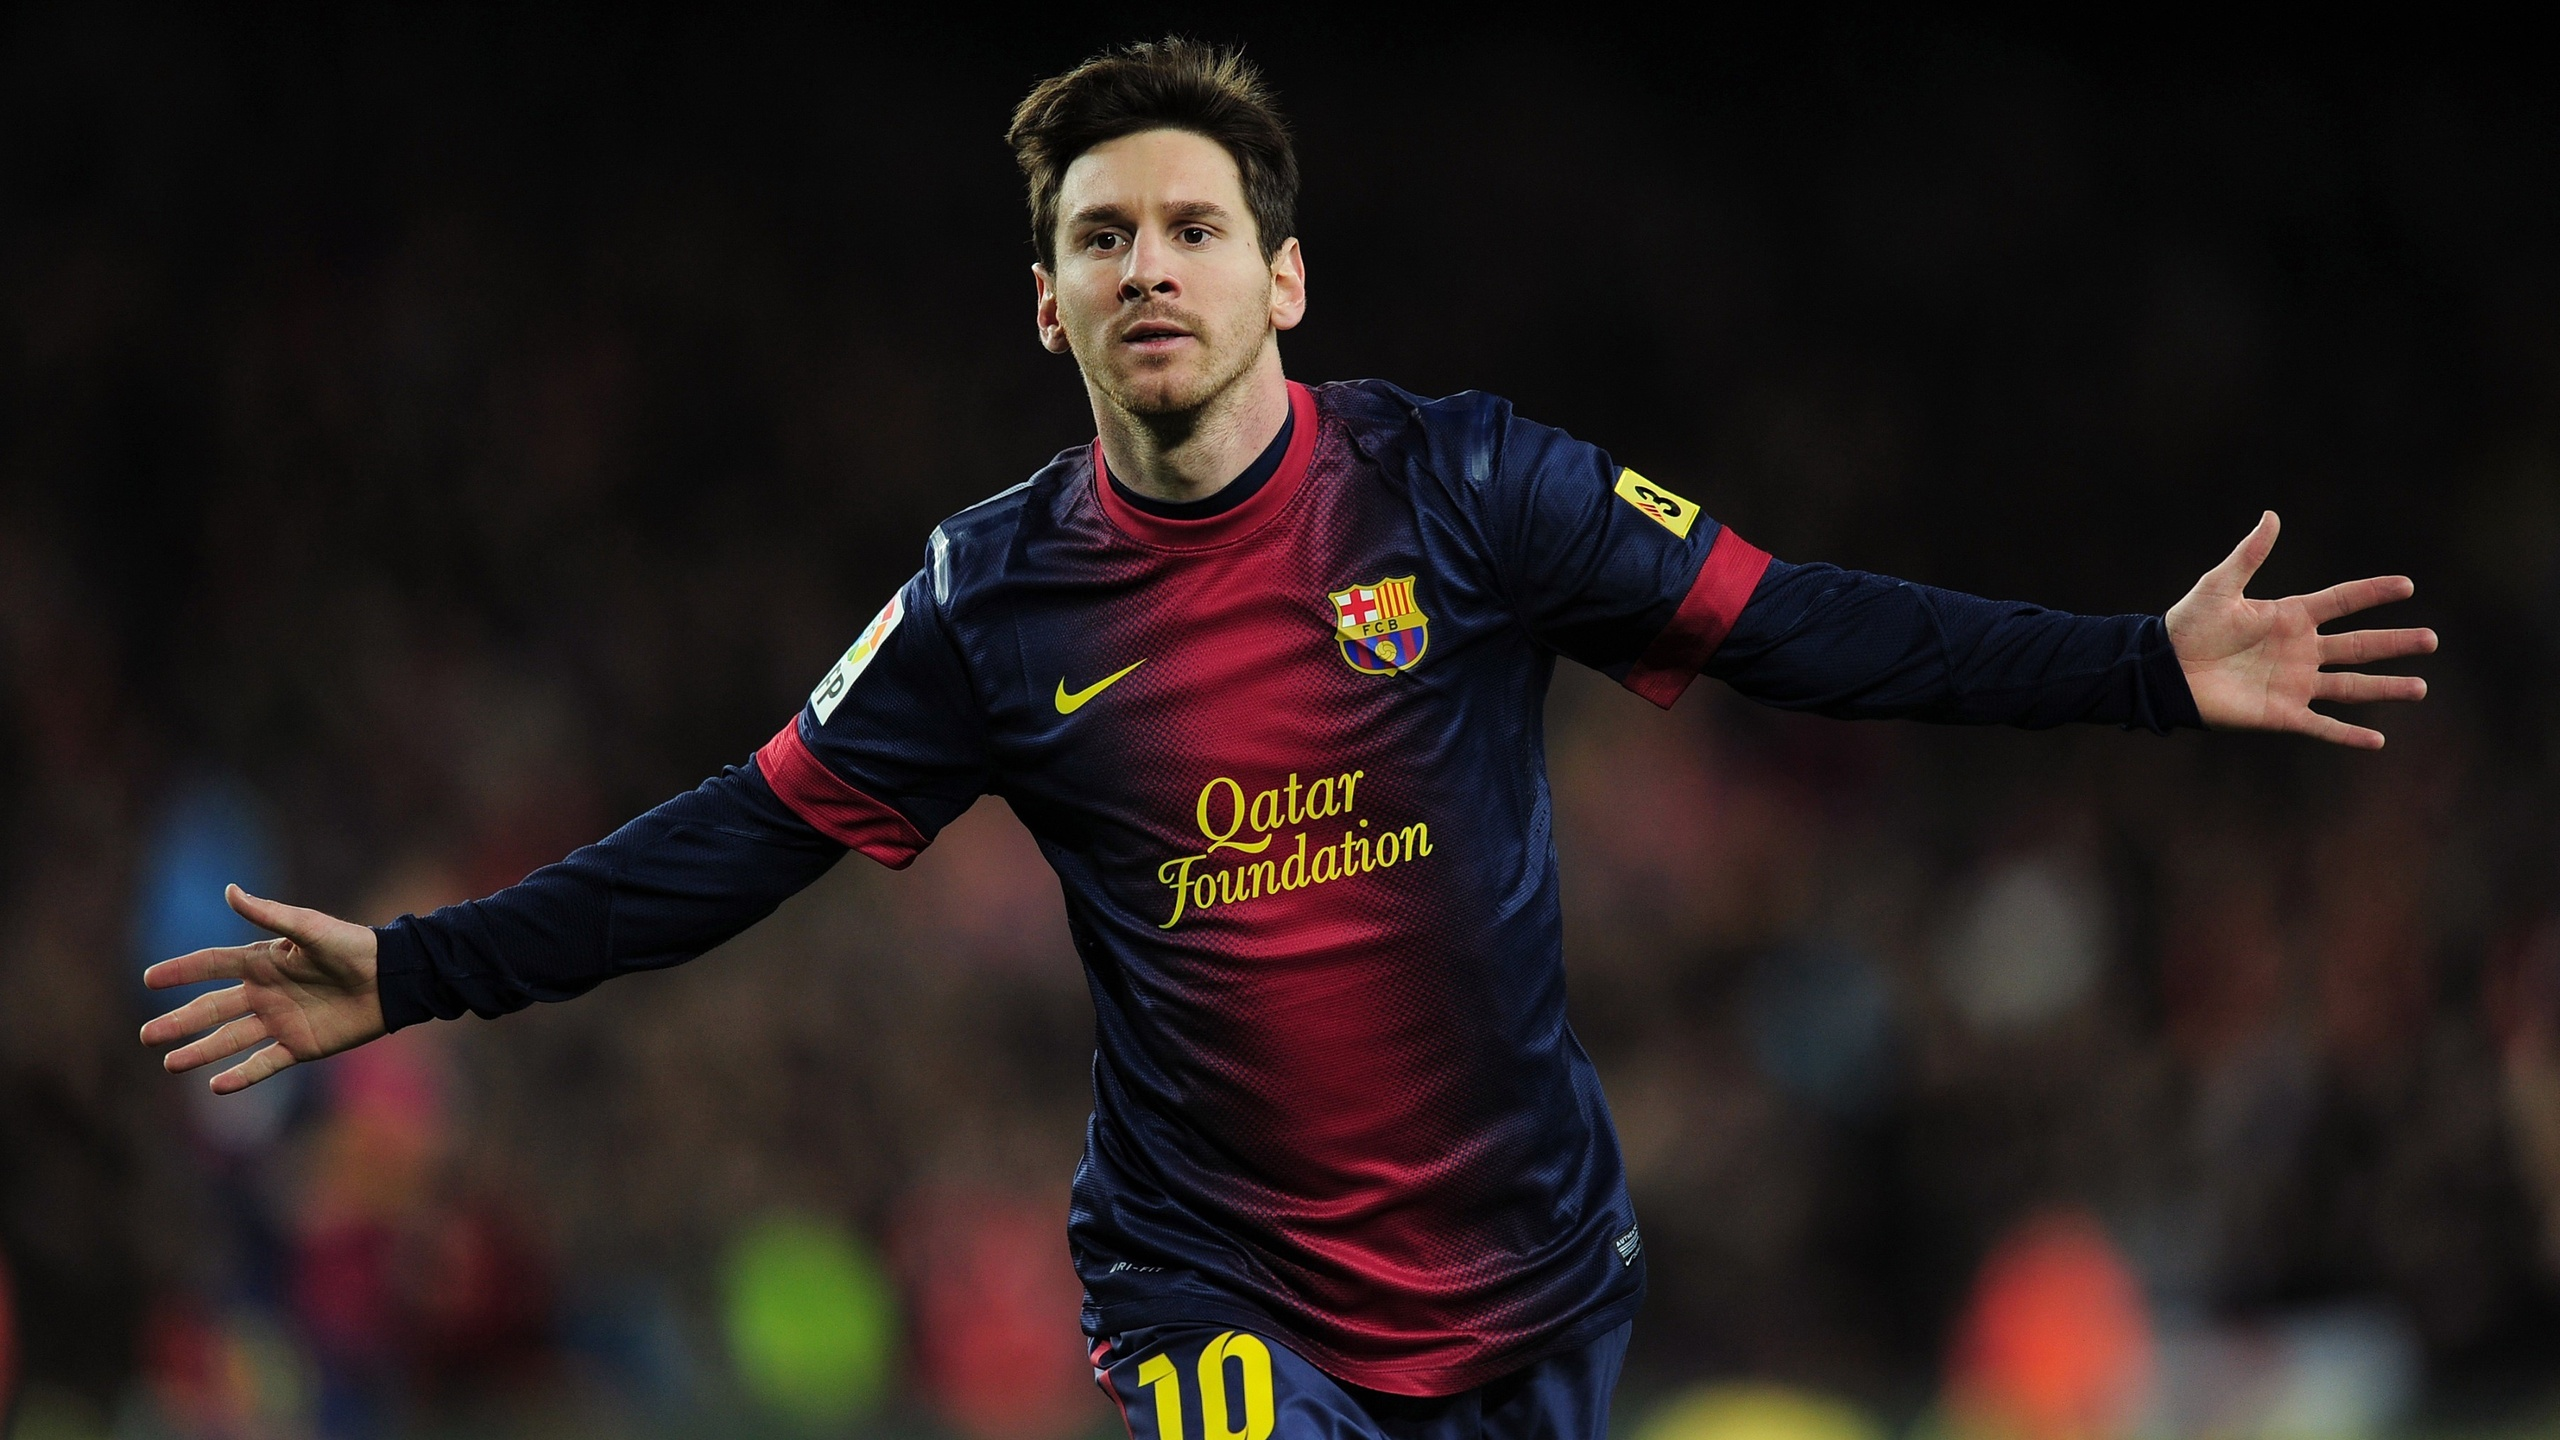 Lionel Messi Wallpapers  Wallpaper